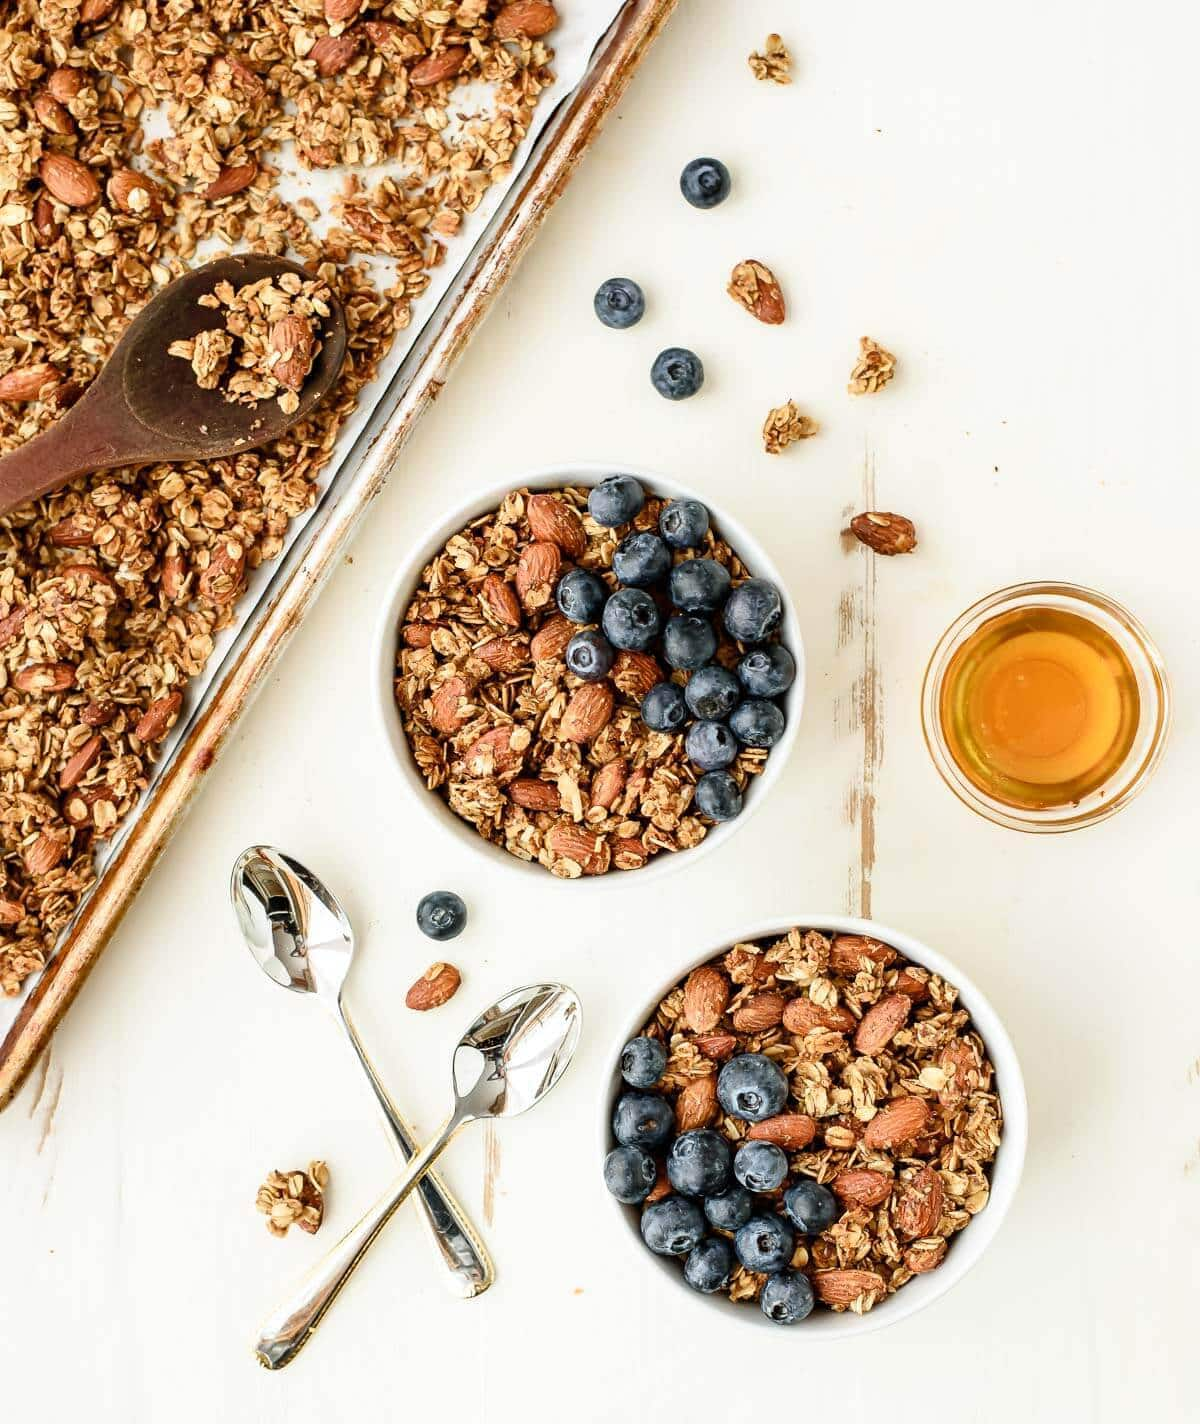 Stop wasting money on store-bought granola and make this homemade healthy granola recipe instead! Made with simple ingredients like oats and honey and so good for you too!